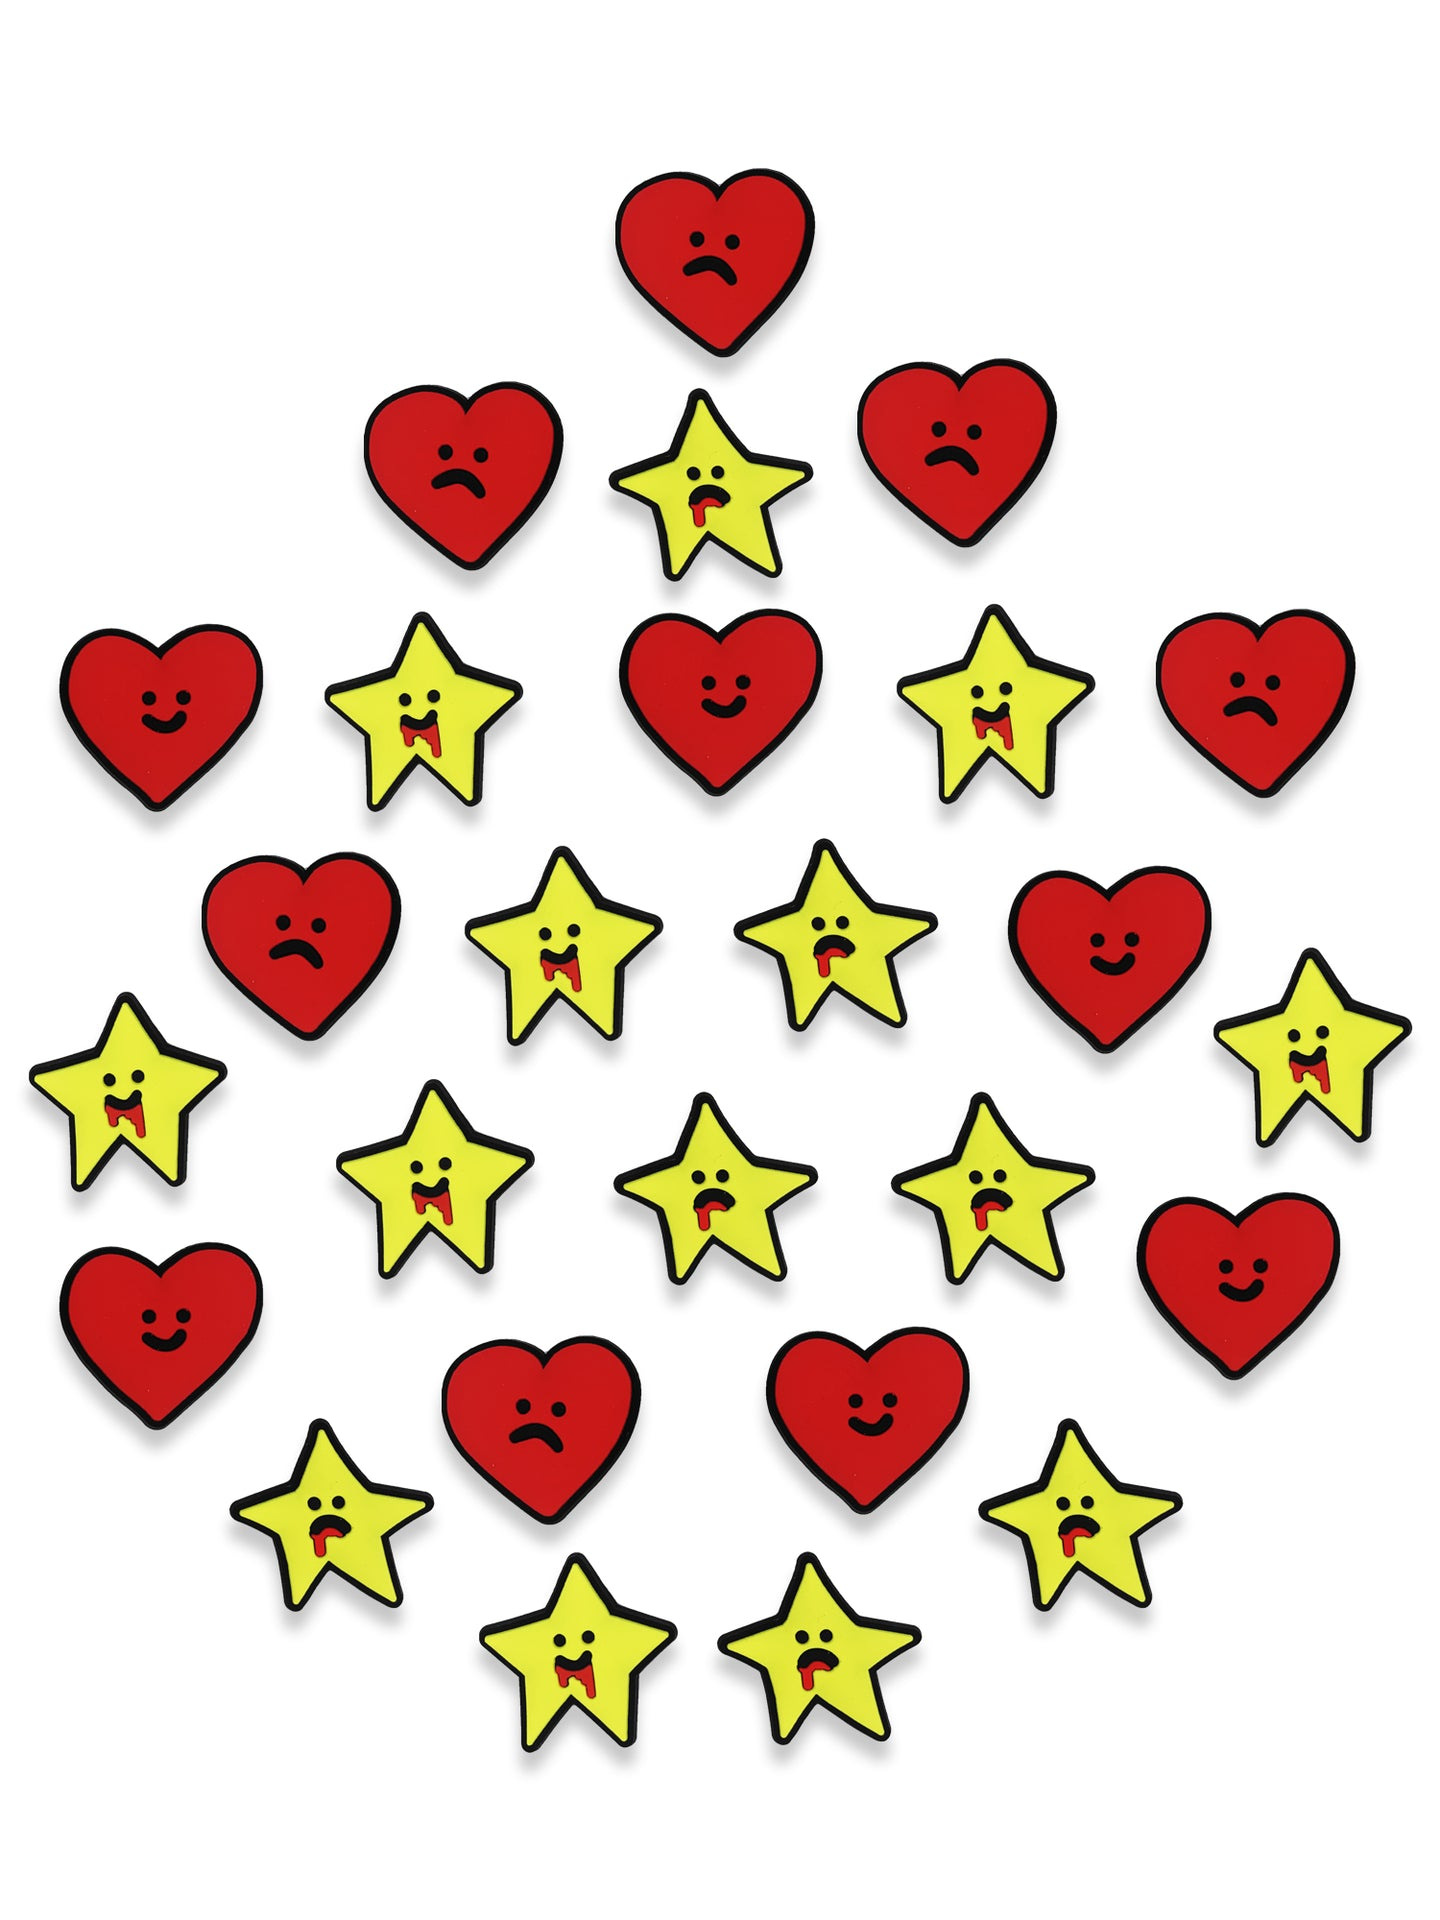 'HEARTS & STARS' Charms 26 Pcs - Patrick Church